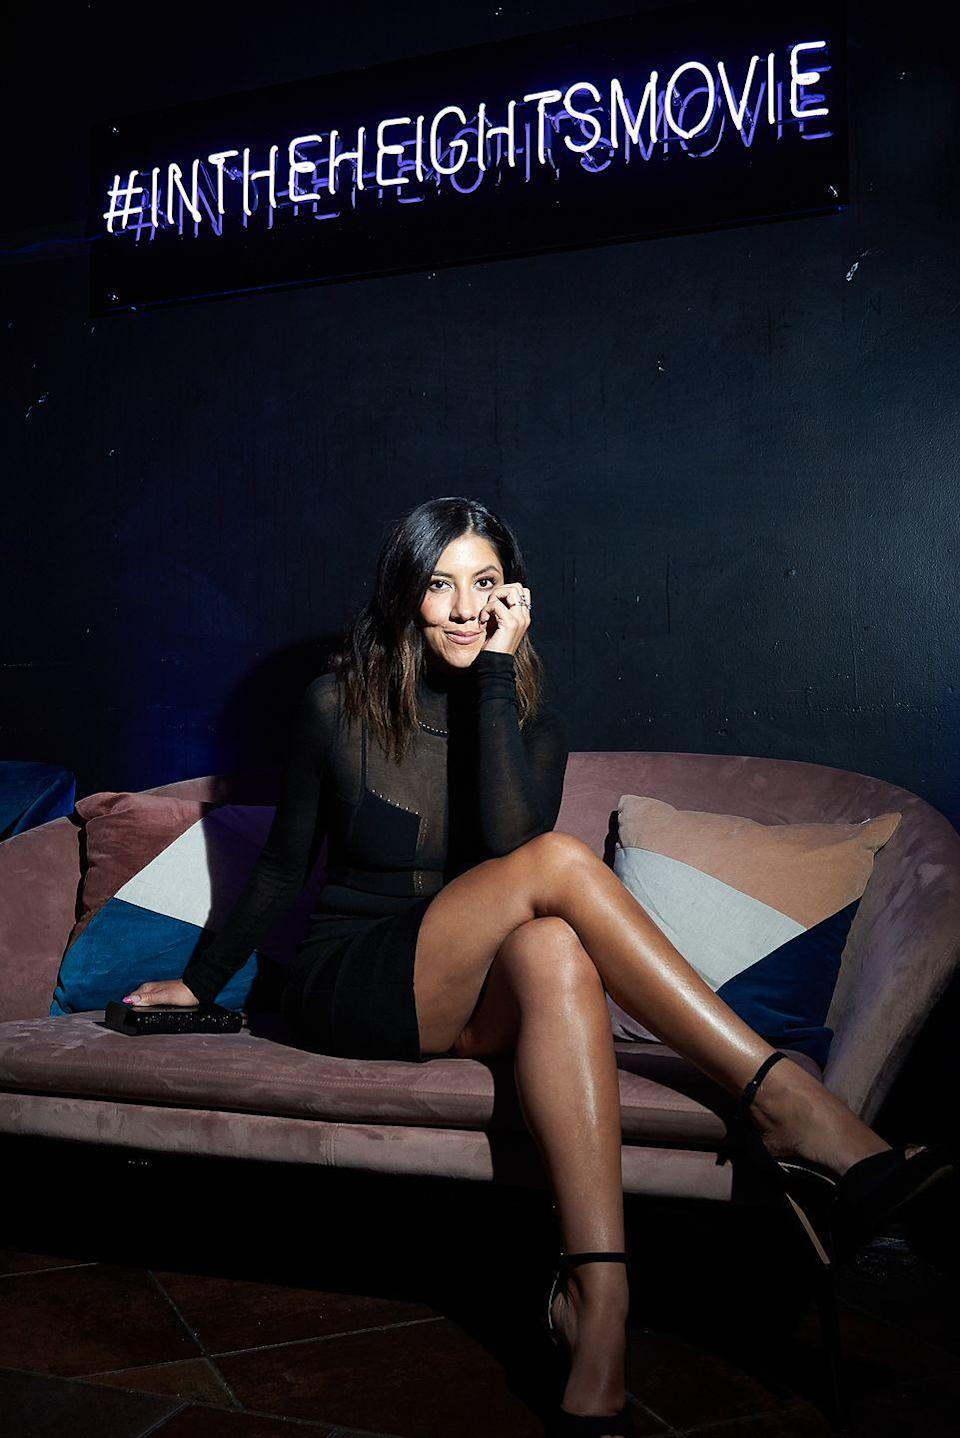 <p>Stephanie Beatriz plays Detective Rosa Diaz in the sitcom <em>Brooklyn Nine-Nine</em>. She also had a role in <em>Modern Family</em>. And for the <em>Heights</em>, she plays Carla, who is joined at the hip to her castmates Dascha Polanco and Daphne Rubin-Vega. </p><p><strong>Follow her on Instagram</strong>: @stephaniebeatriz</p>